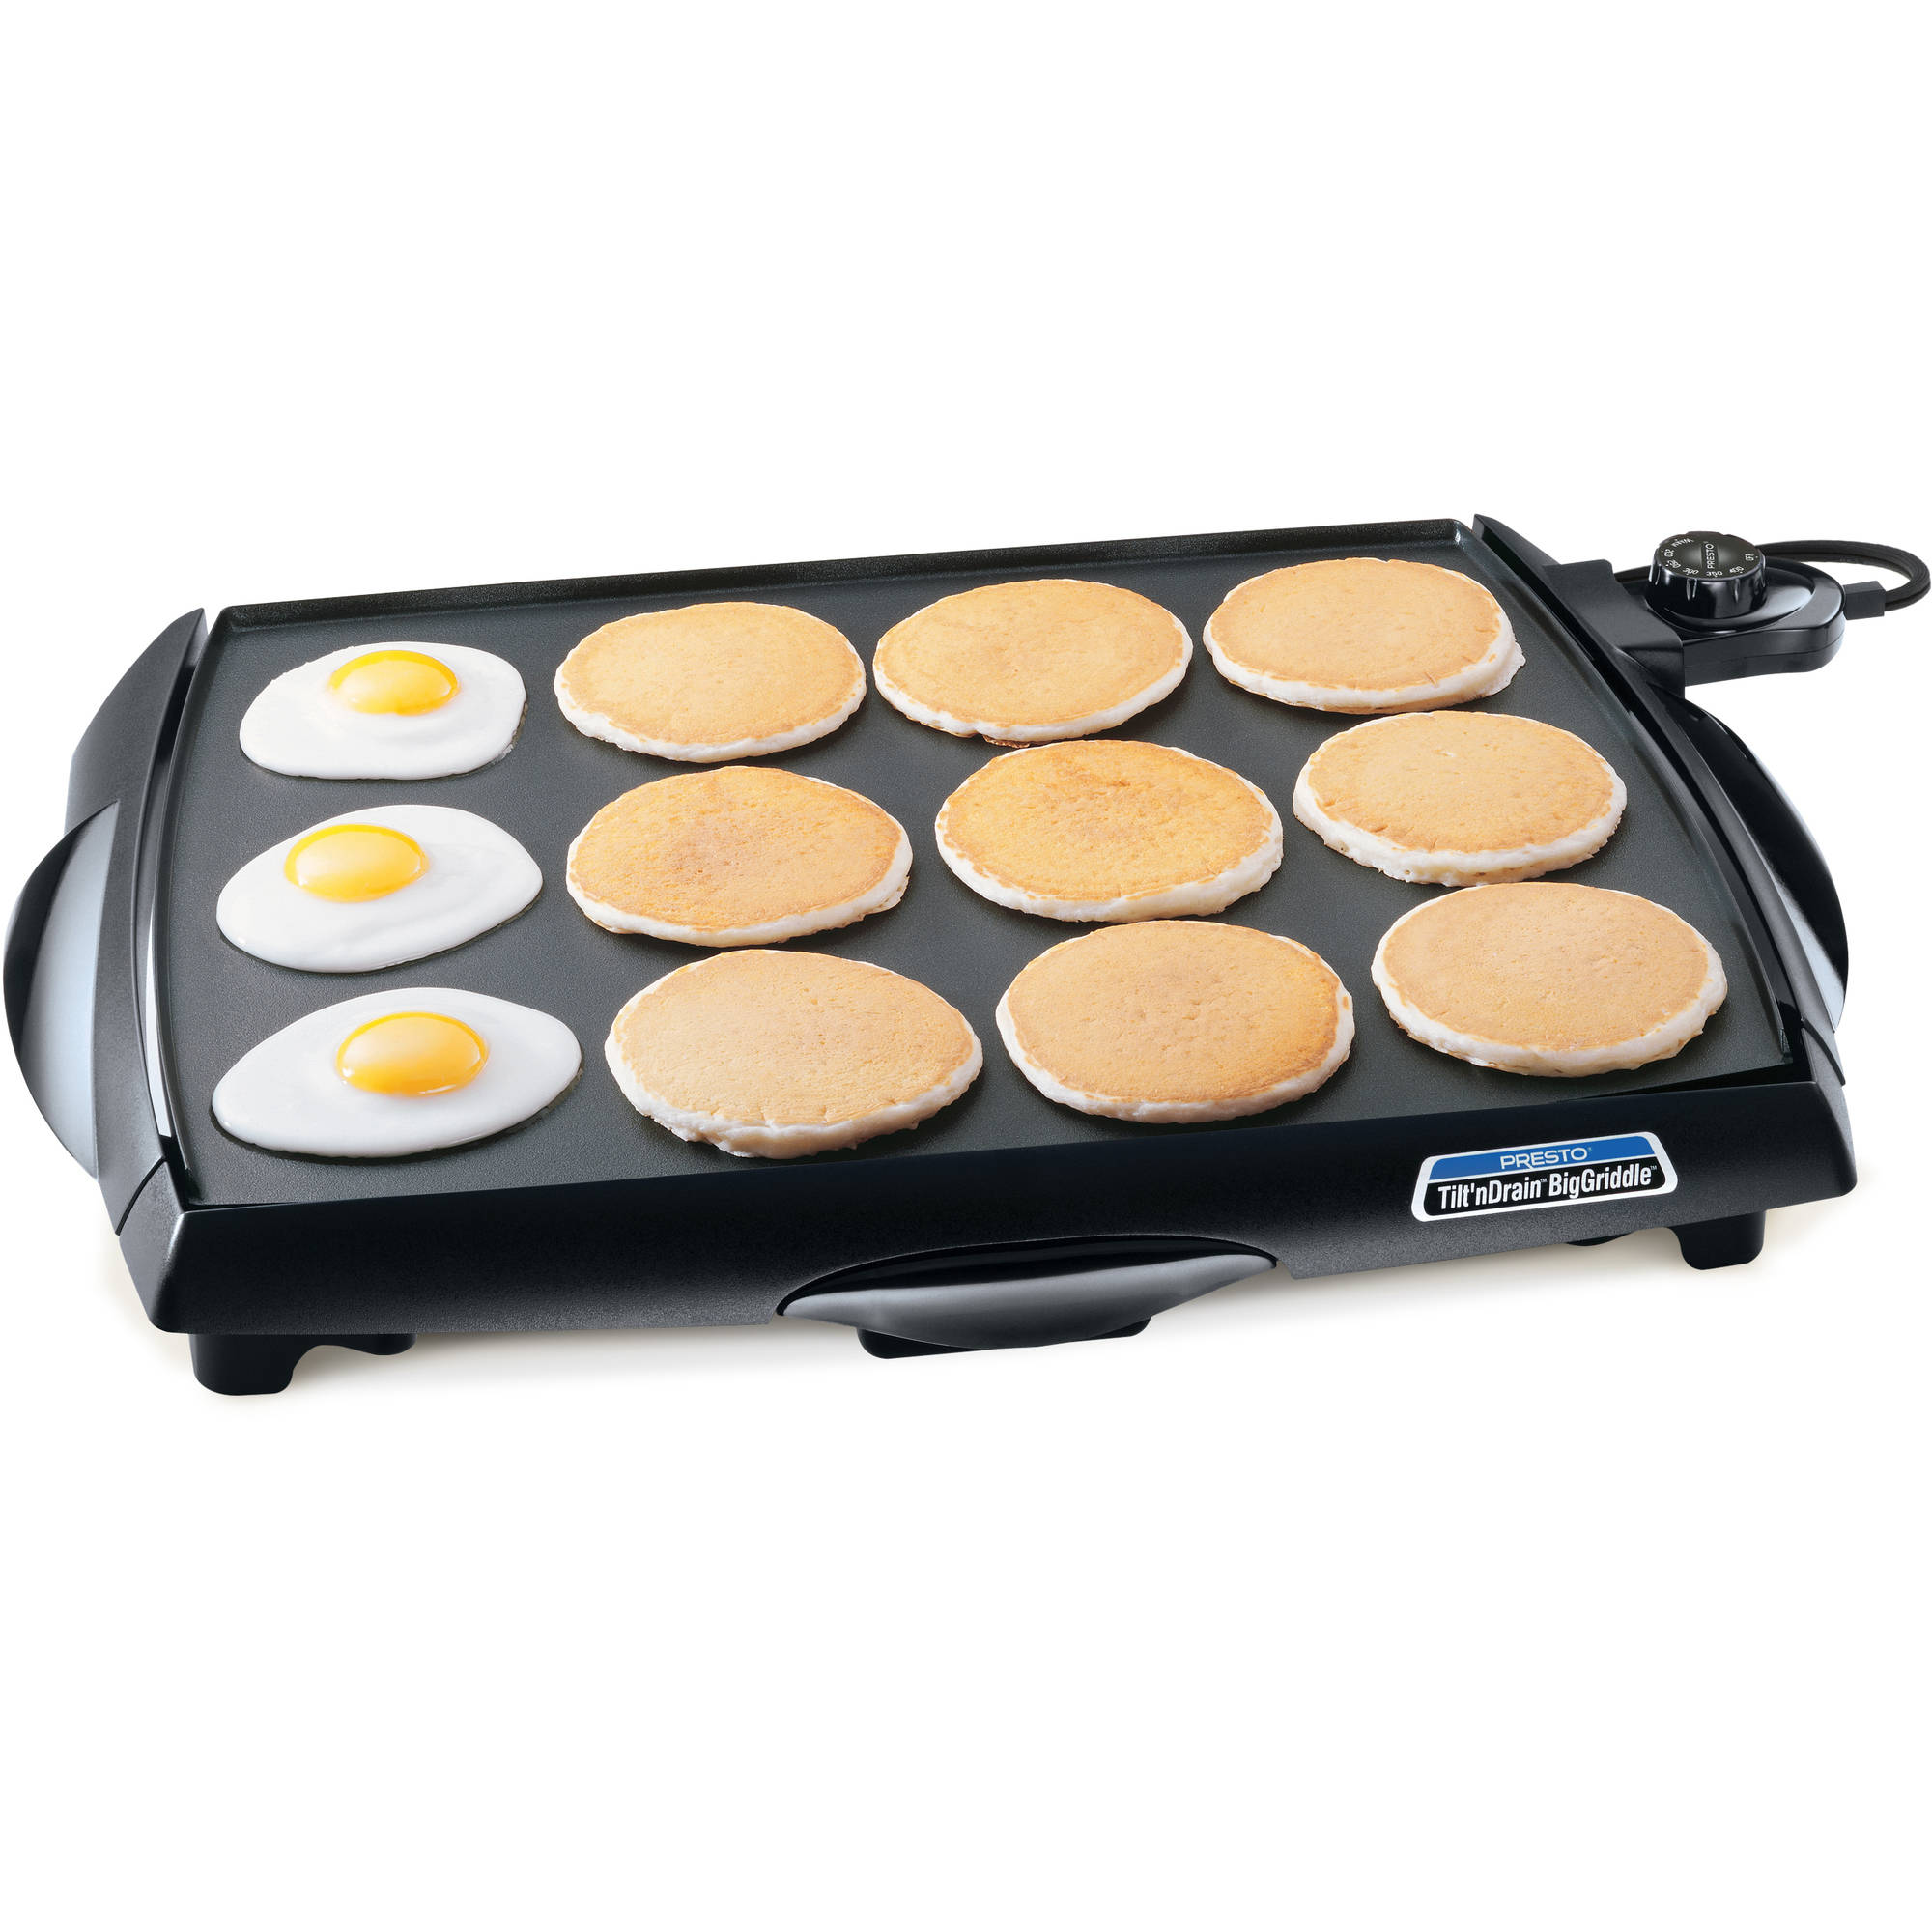 Presto 07046 Tilt'nDrain™ BigGriddle® cool-touch griddle